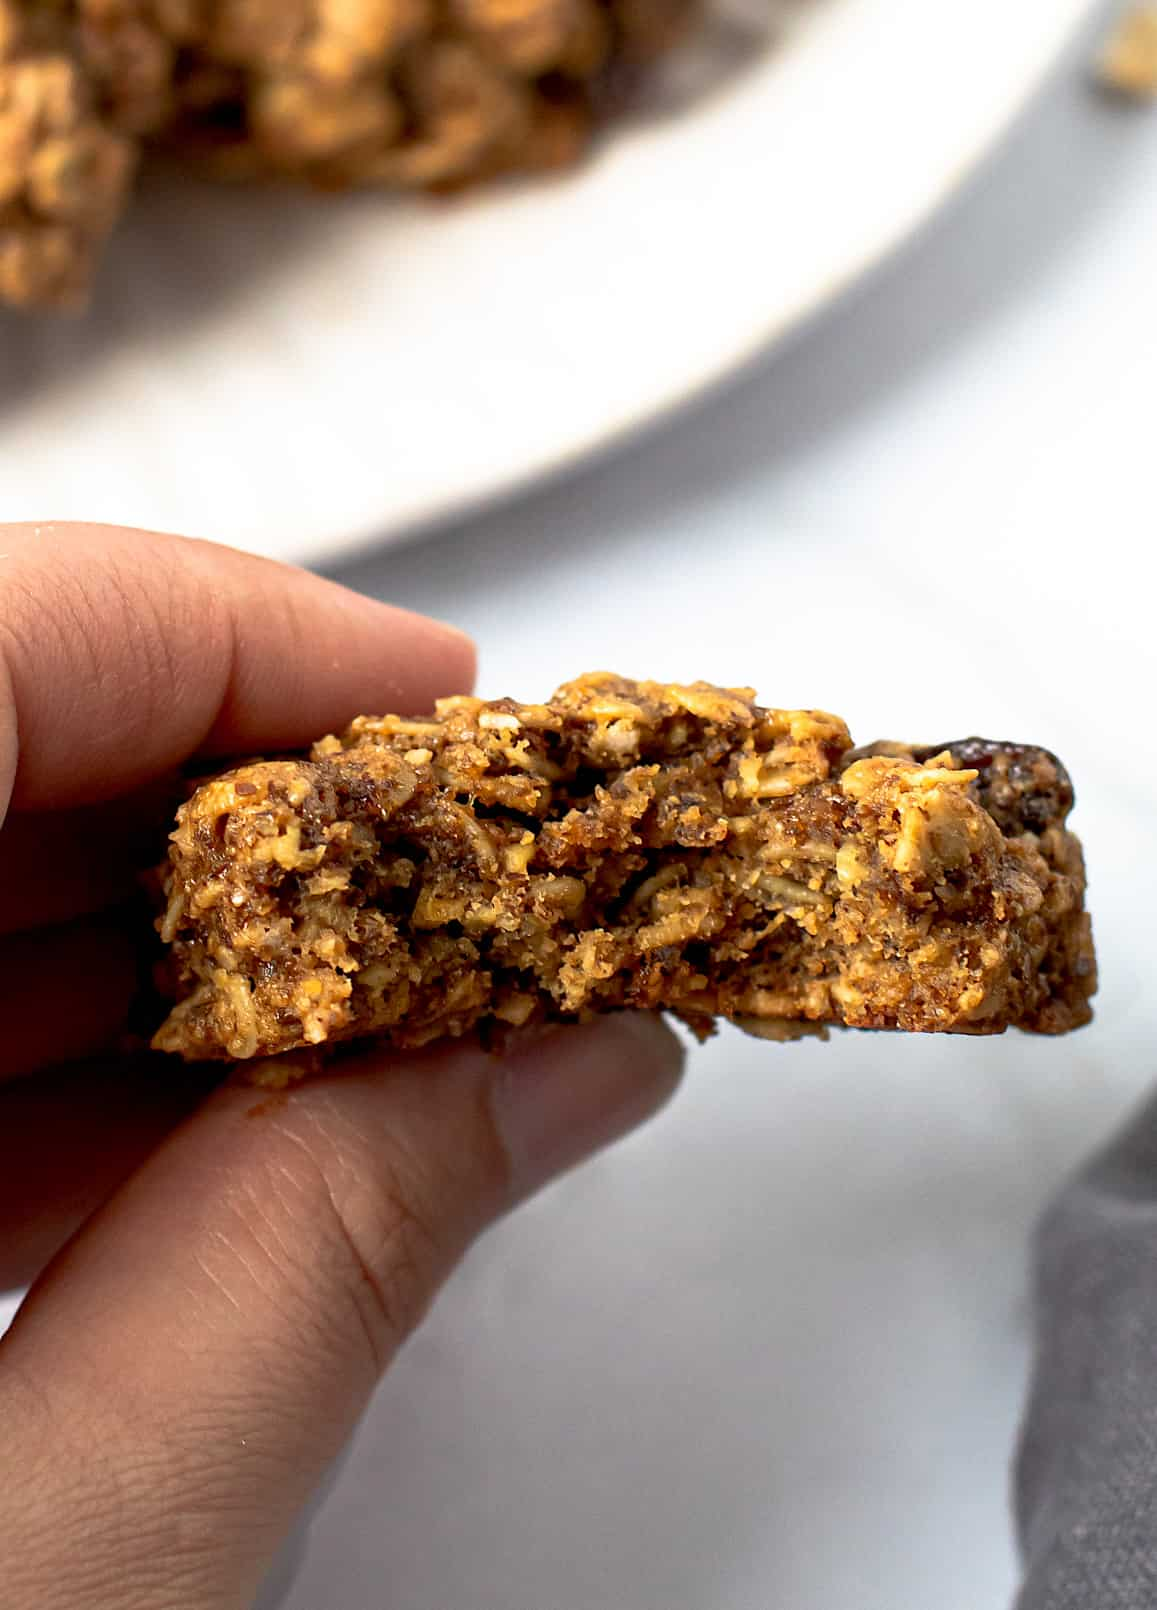 A lactation cookie with a bite taken out of it.